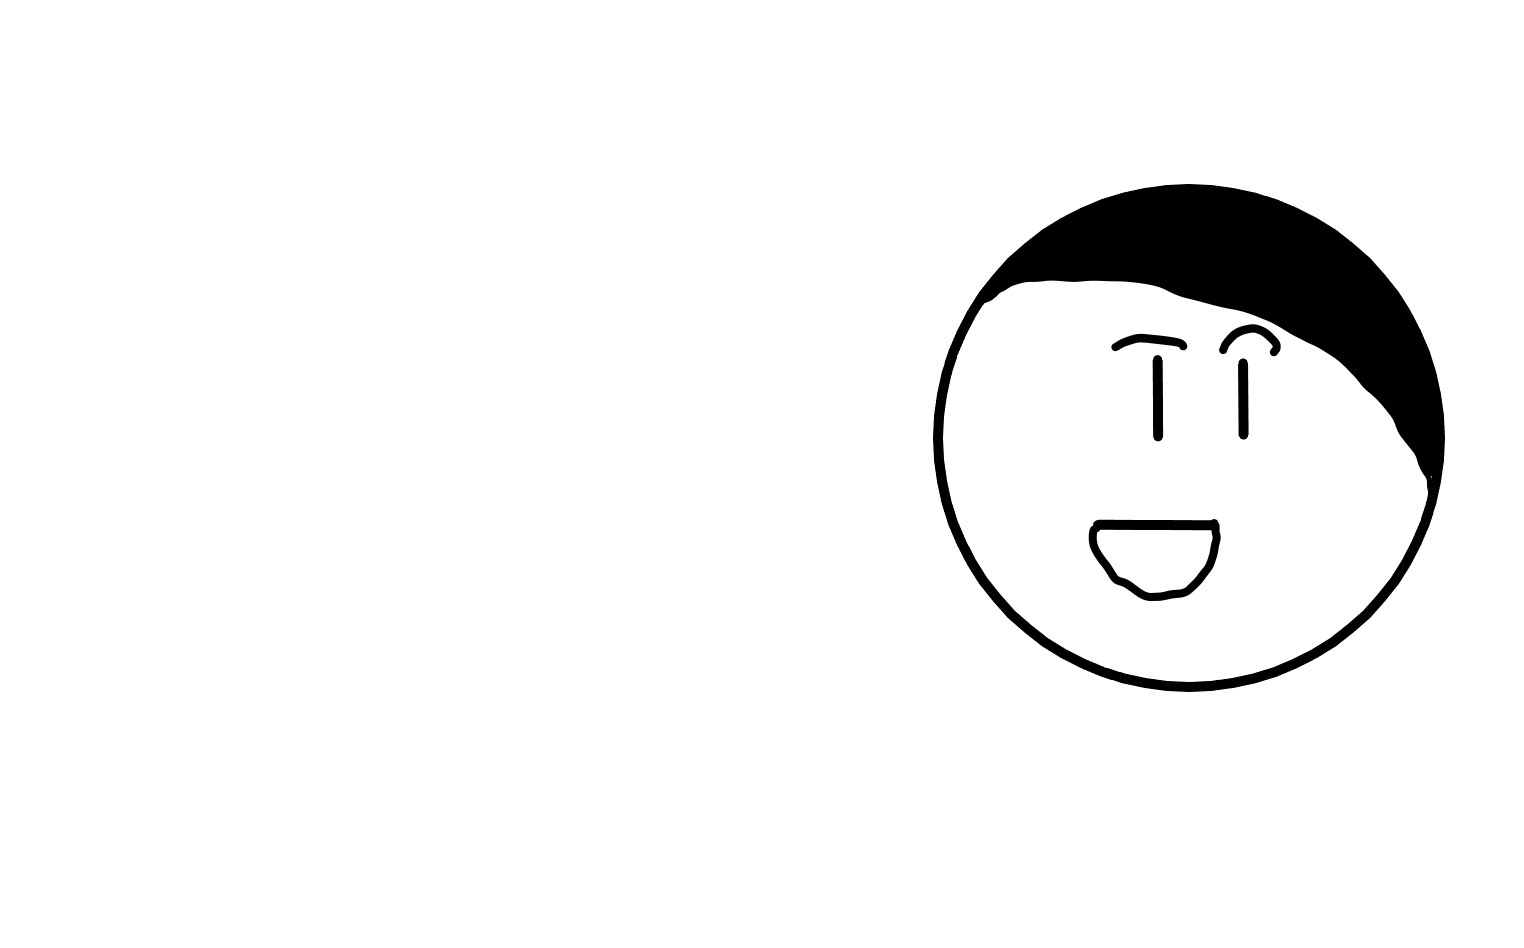 Talking face - looking left smiling.png